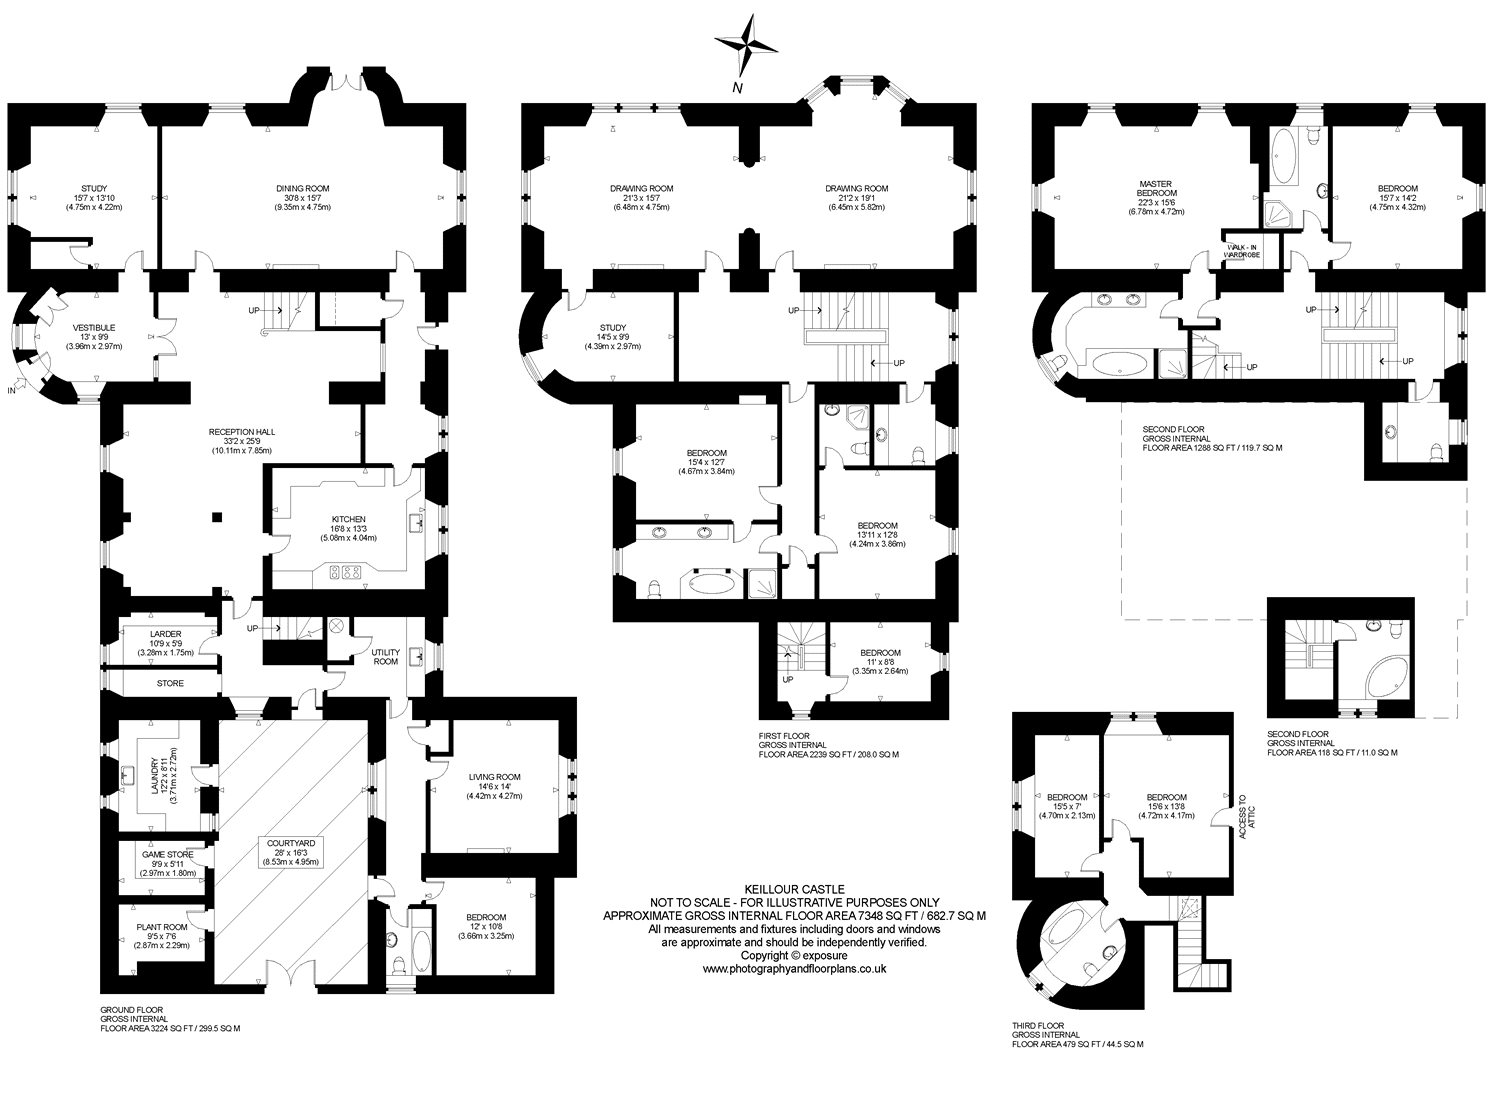 Florplans for Keillour Castle, Keillour, Methven, PH1